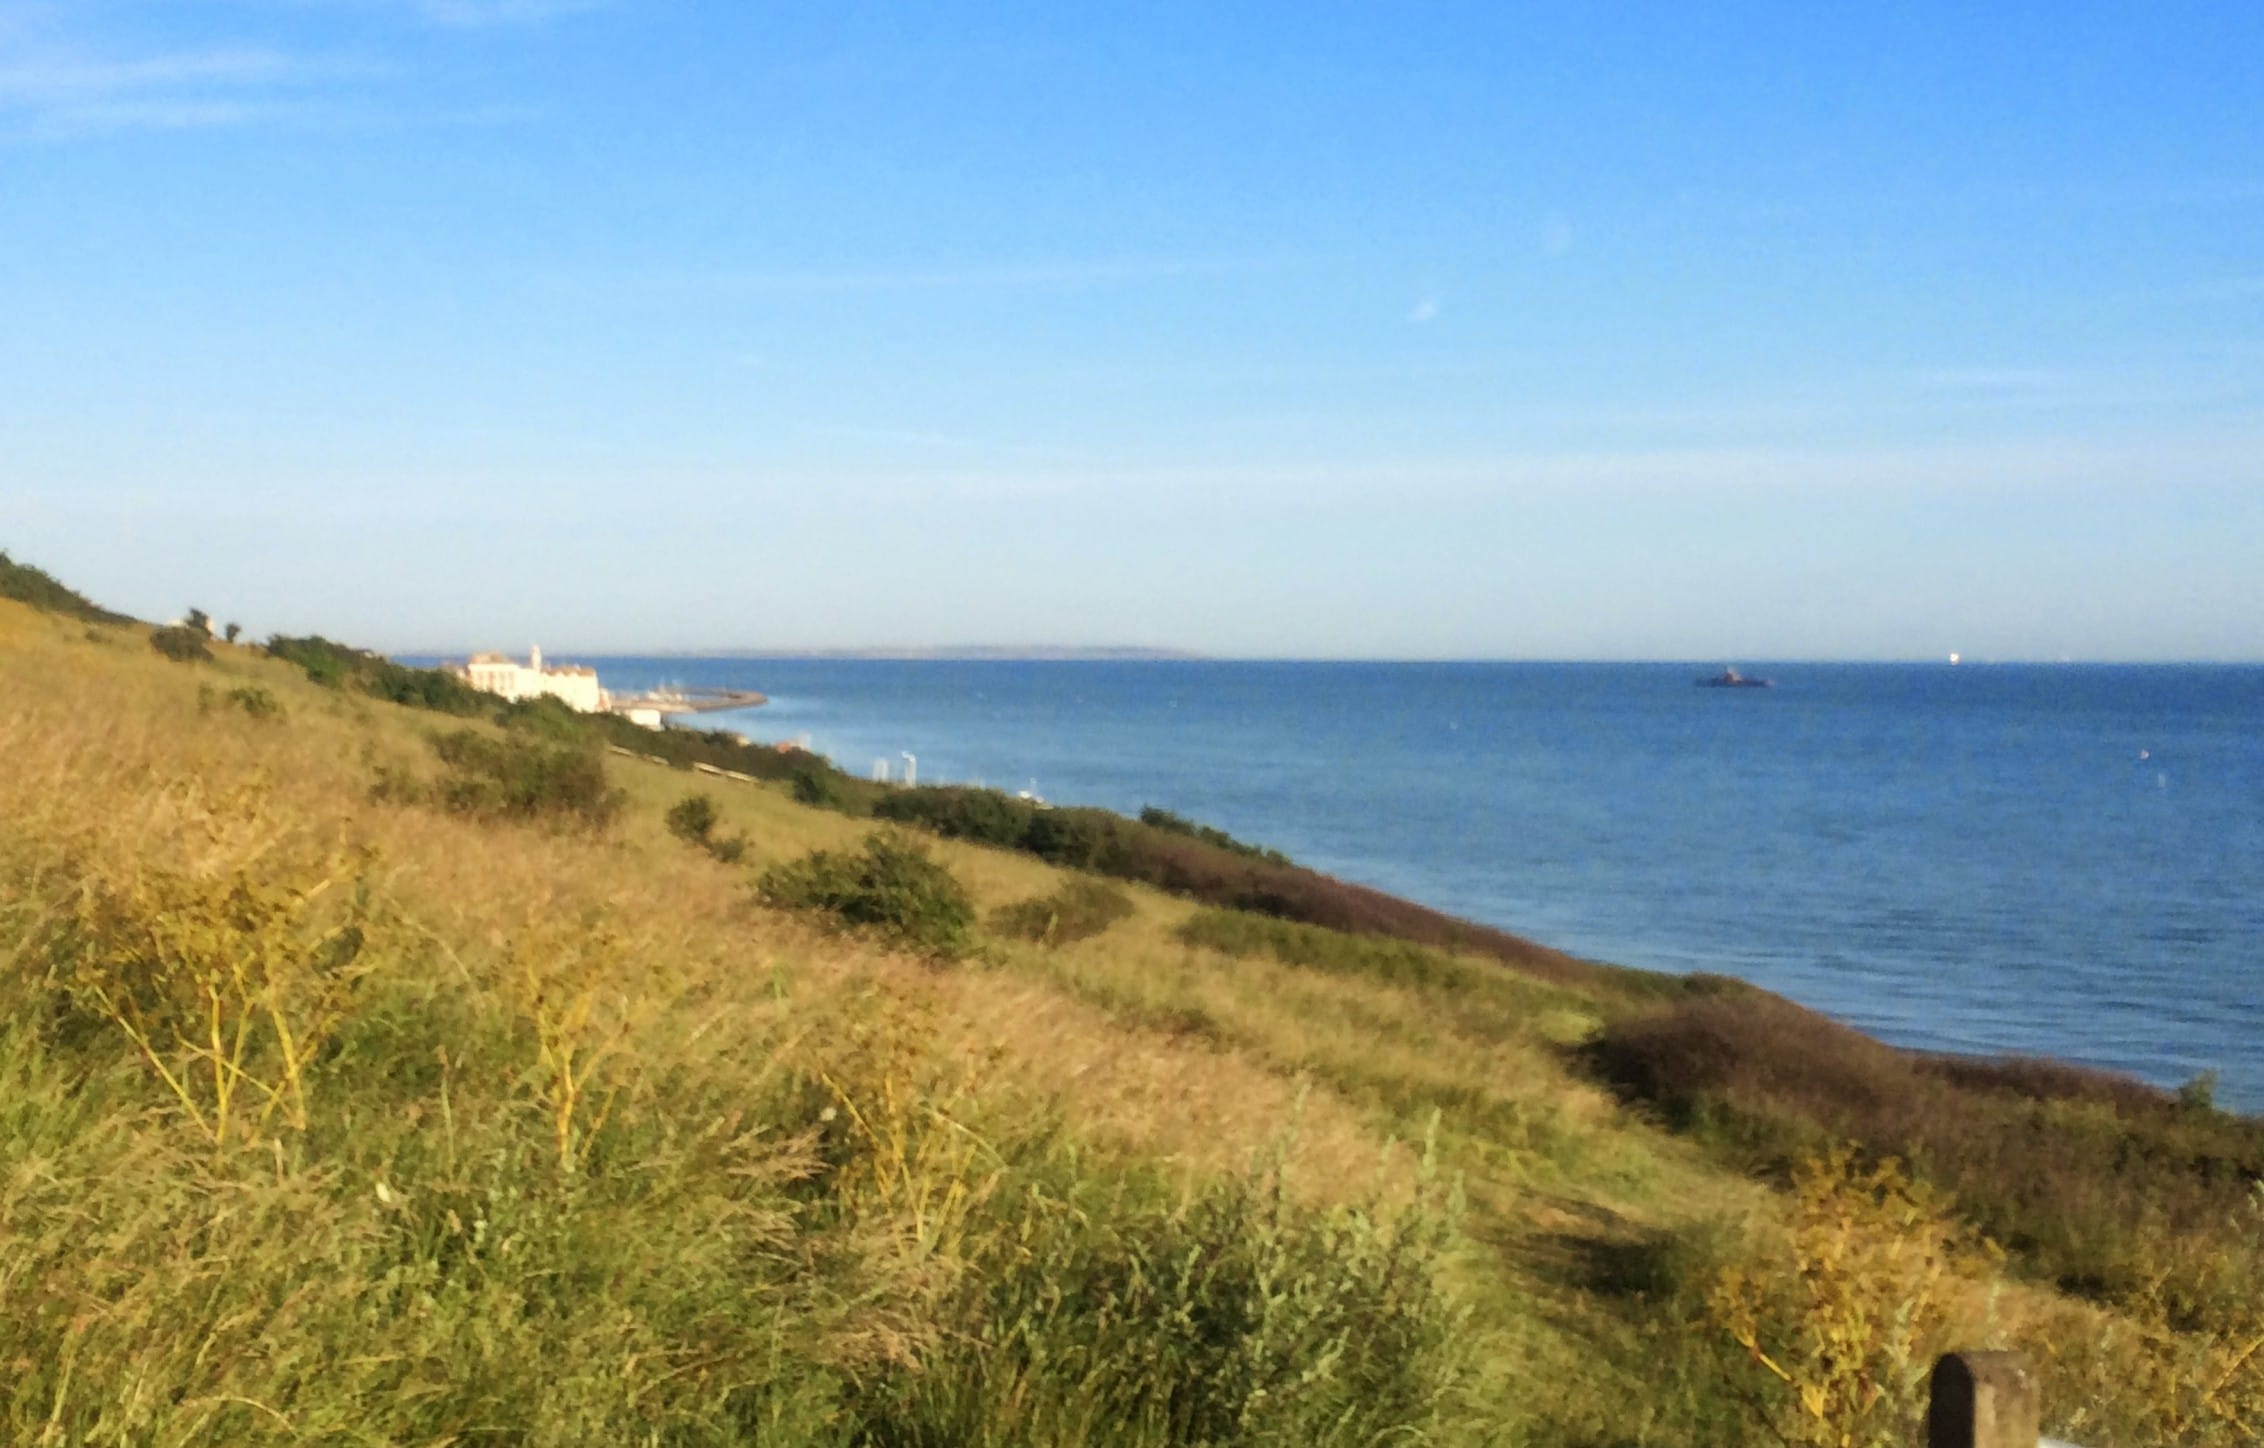 The idyllic Downs in Herne Bay on the East coast of the UK. Part of my morning walk.